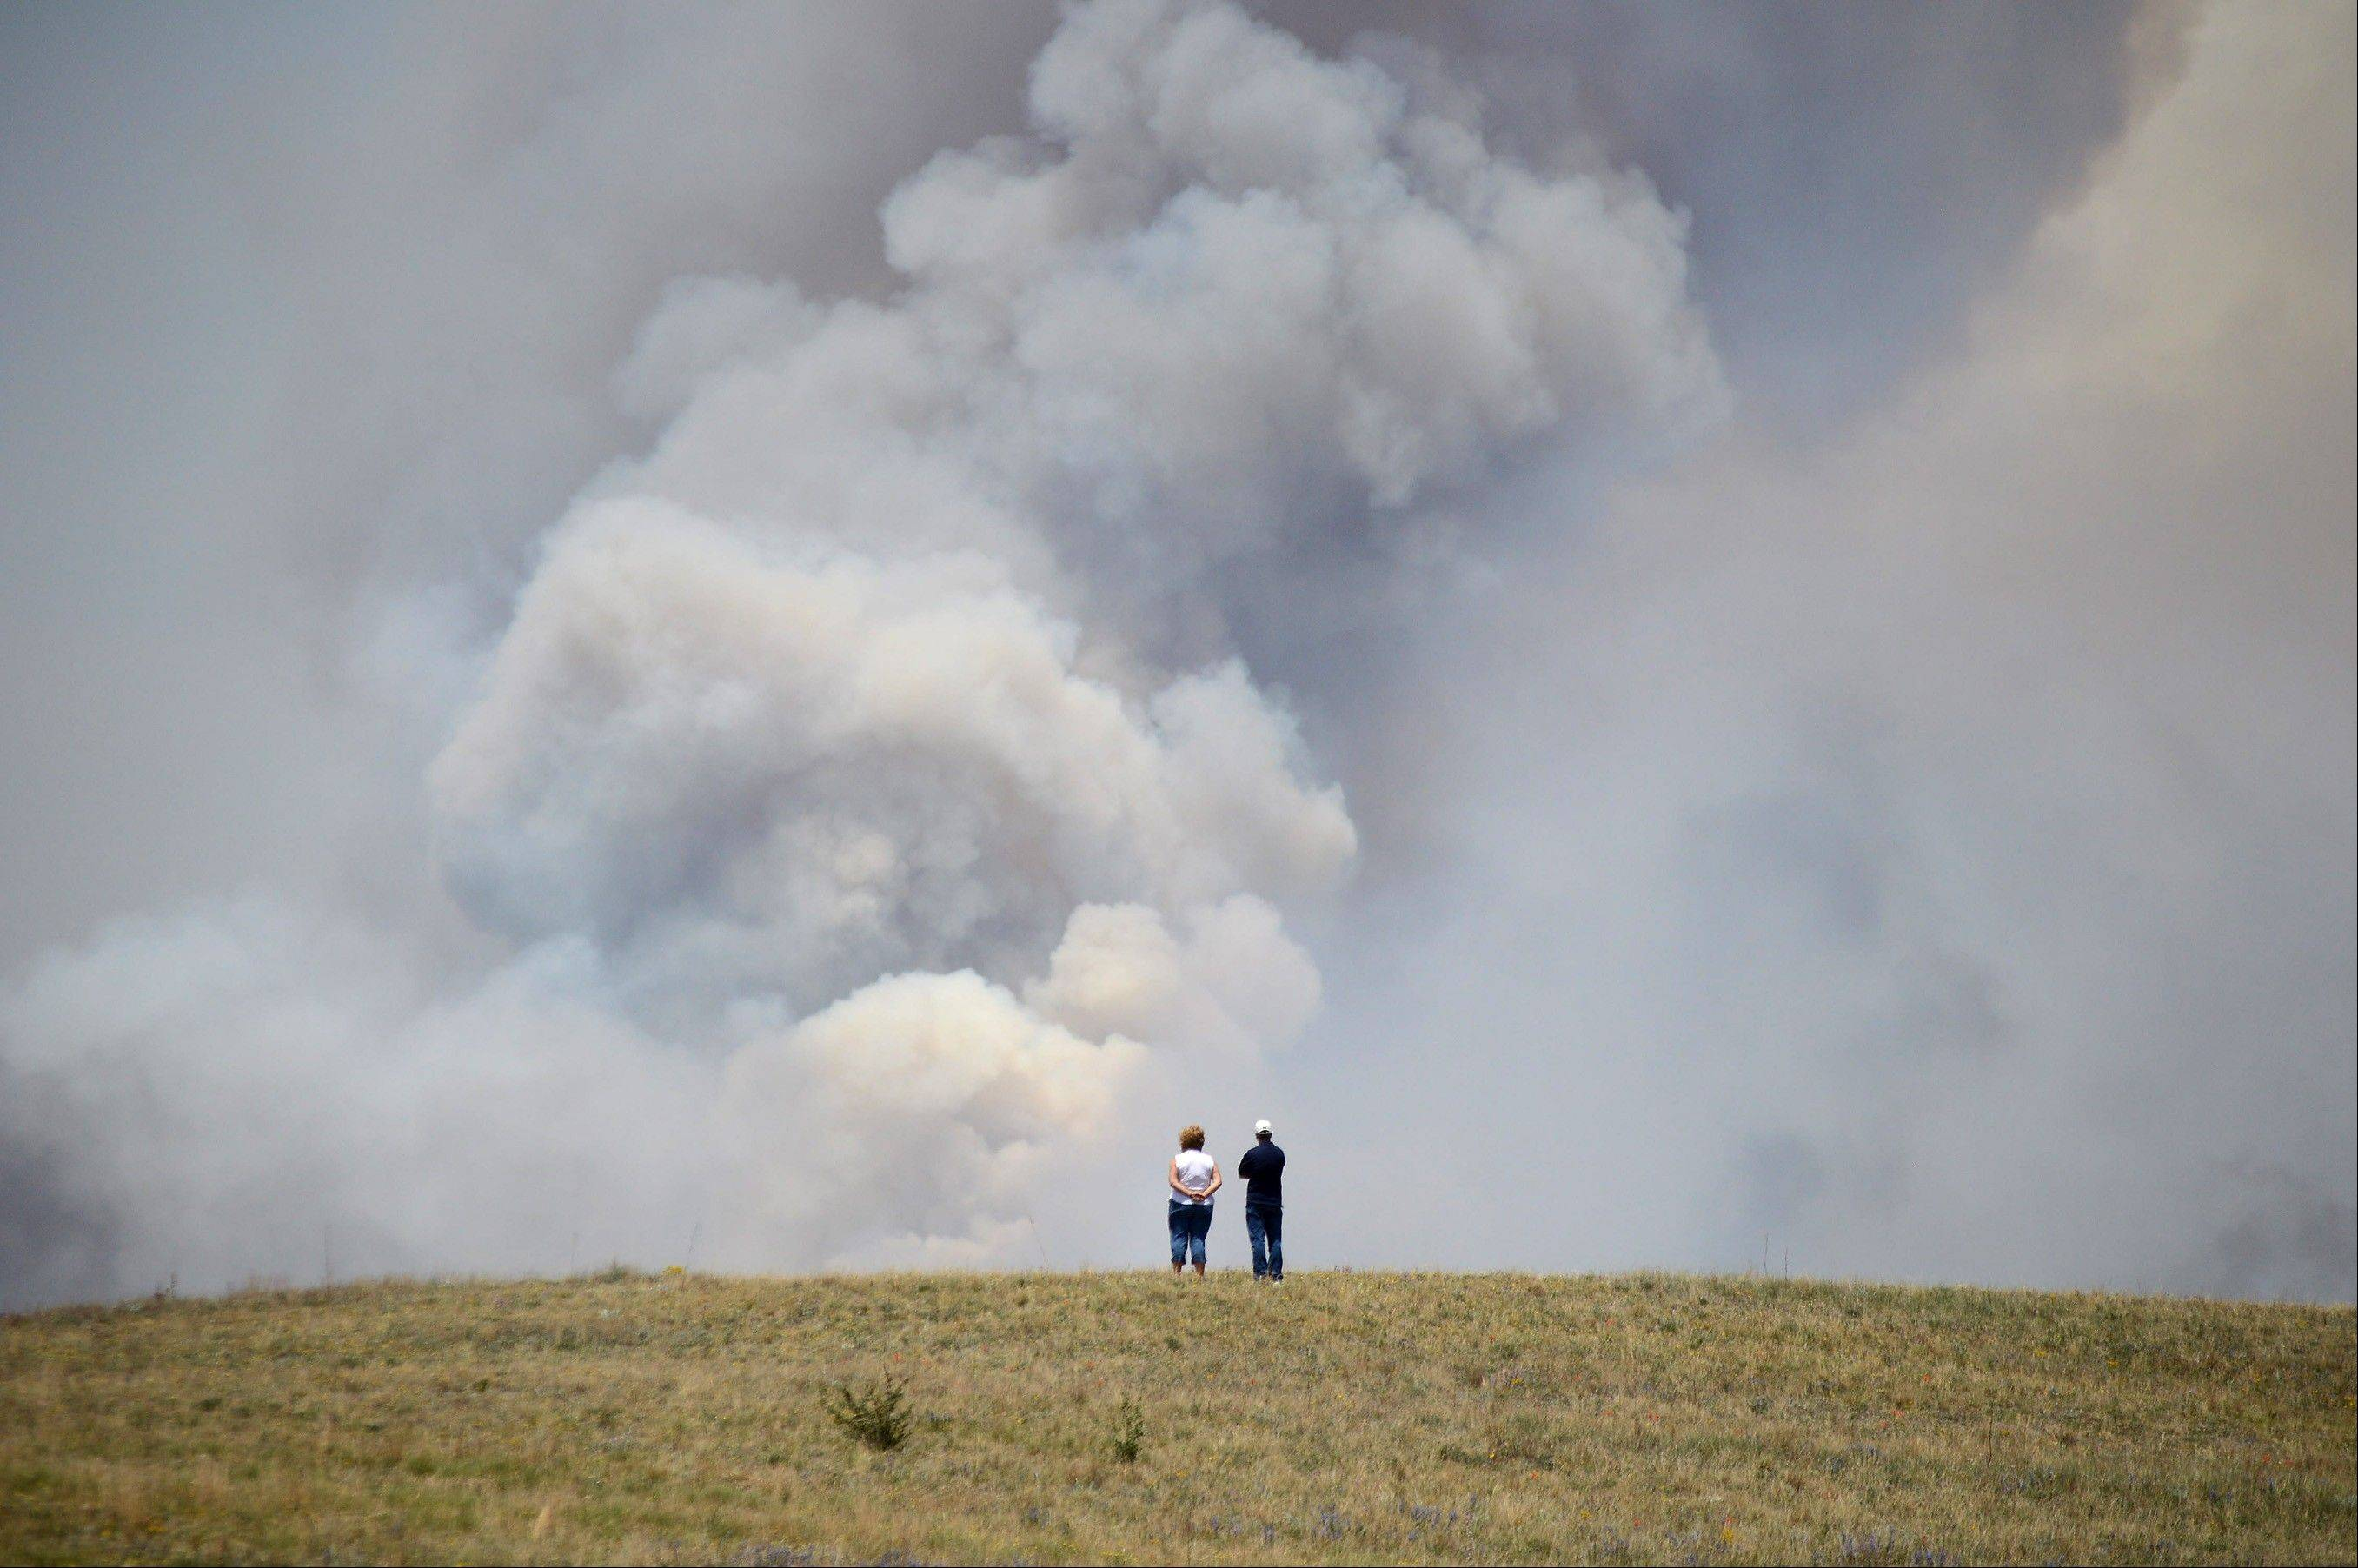 Chris and Christine Walker watch the Black Forest Fire gain steam as it burns out of control for a second straight day near Colorado Springs, Colo. on Wednesday, June 12, 2013. The Walkers live nearby and were under pre-evacuation orders.